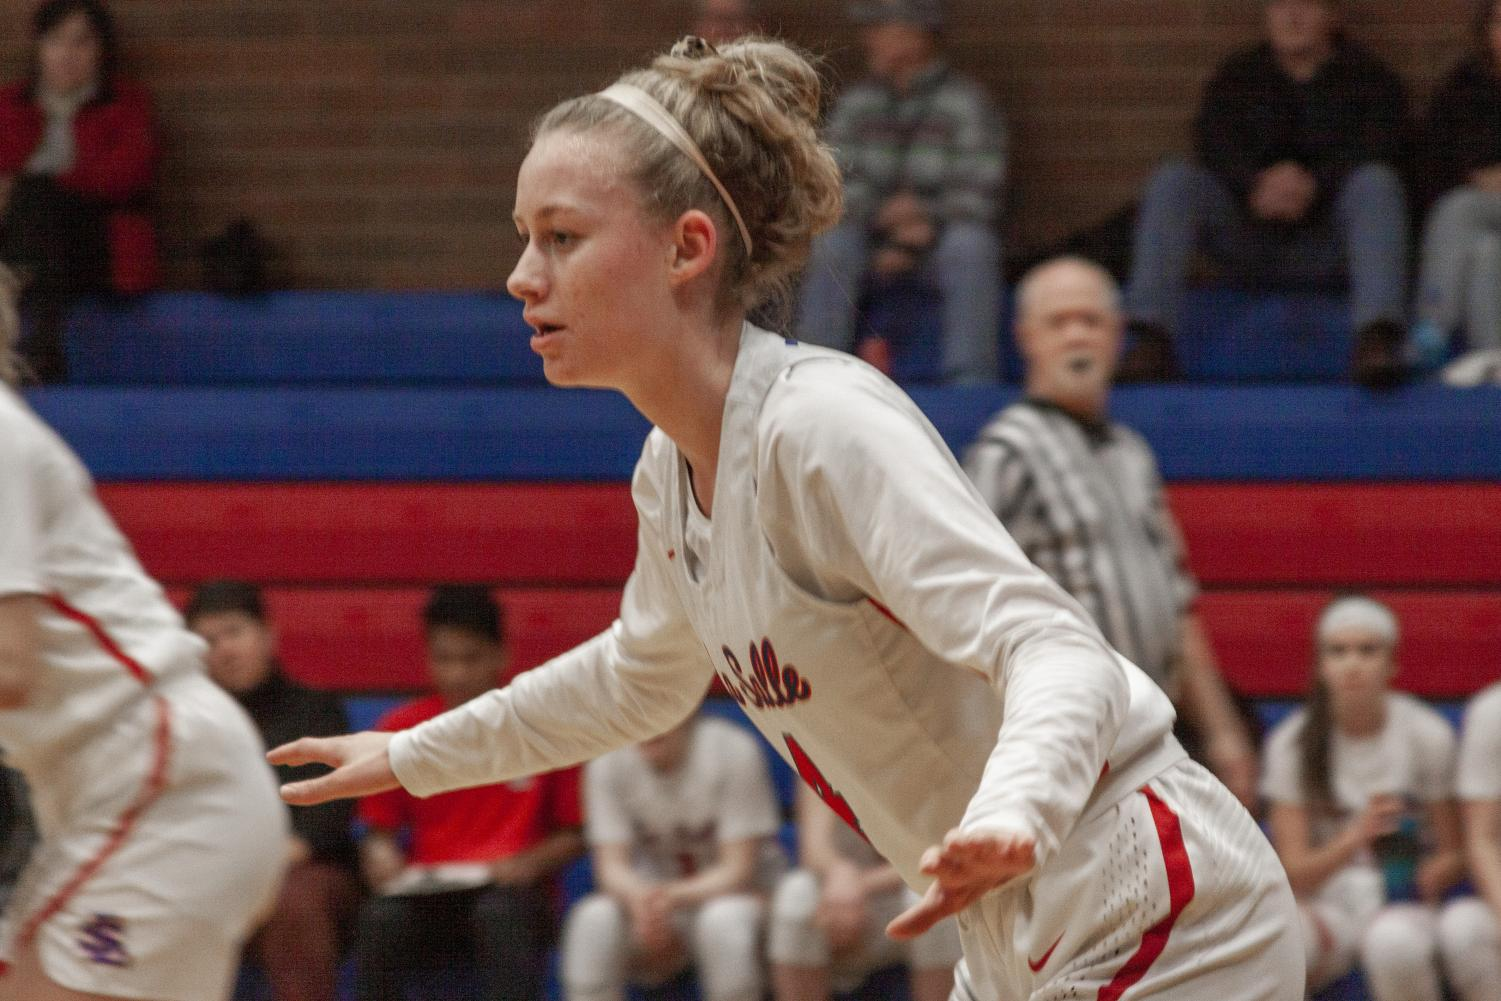 After tearing her ACL twice, senior Lindsay Drango plans on furthering her basketball career in college.